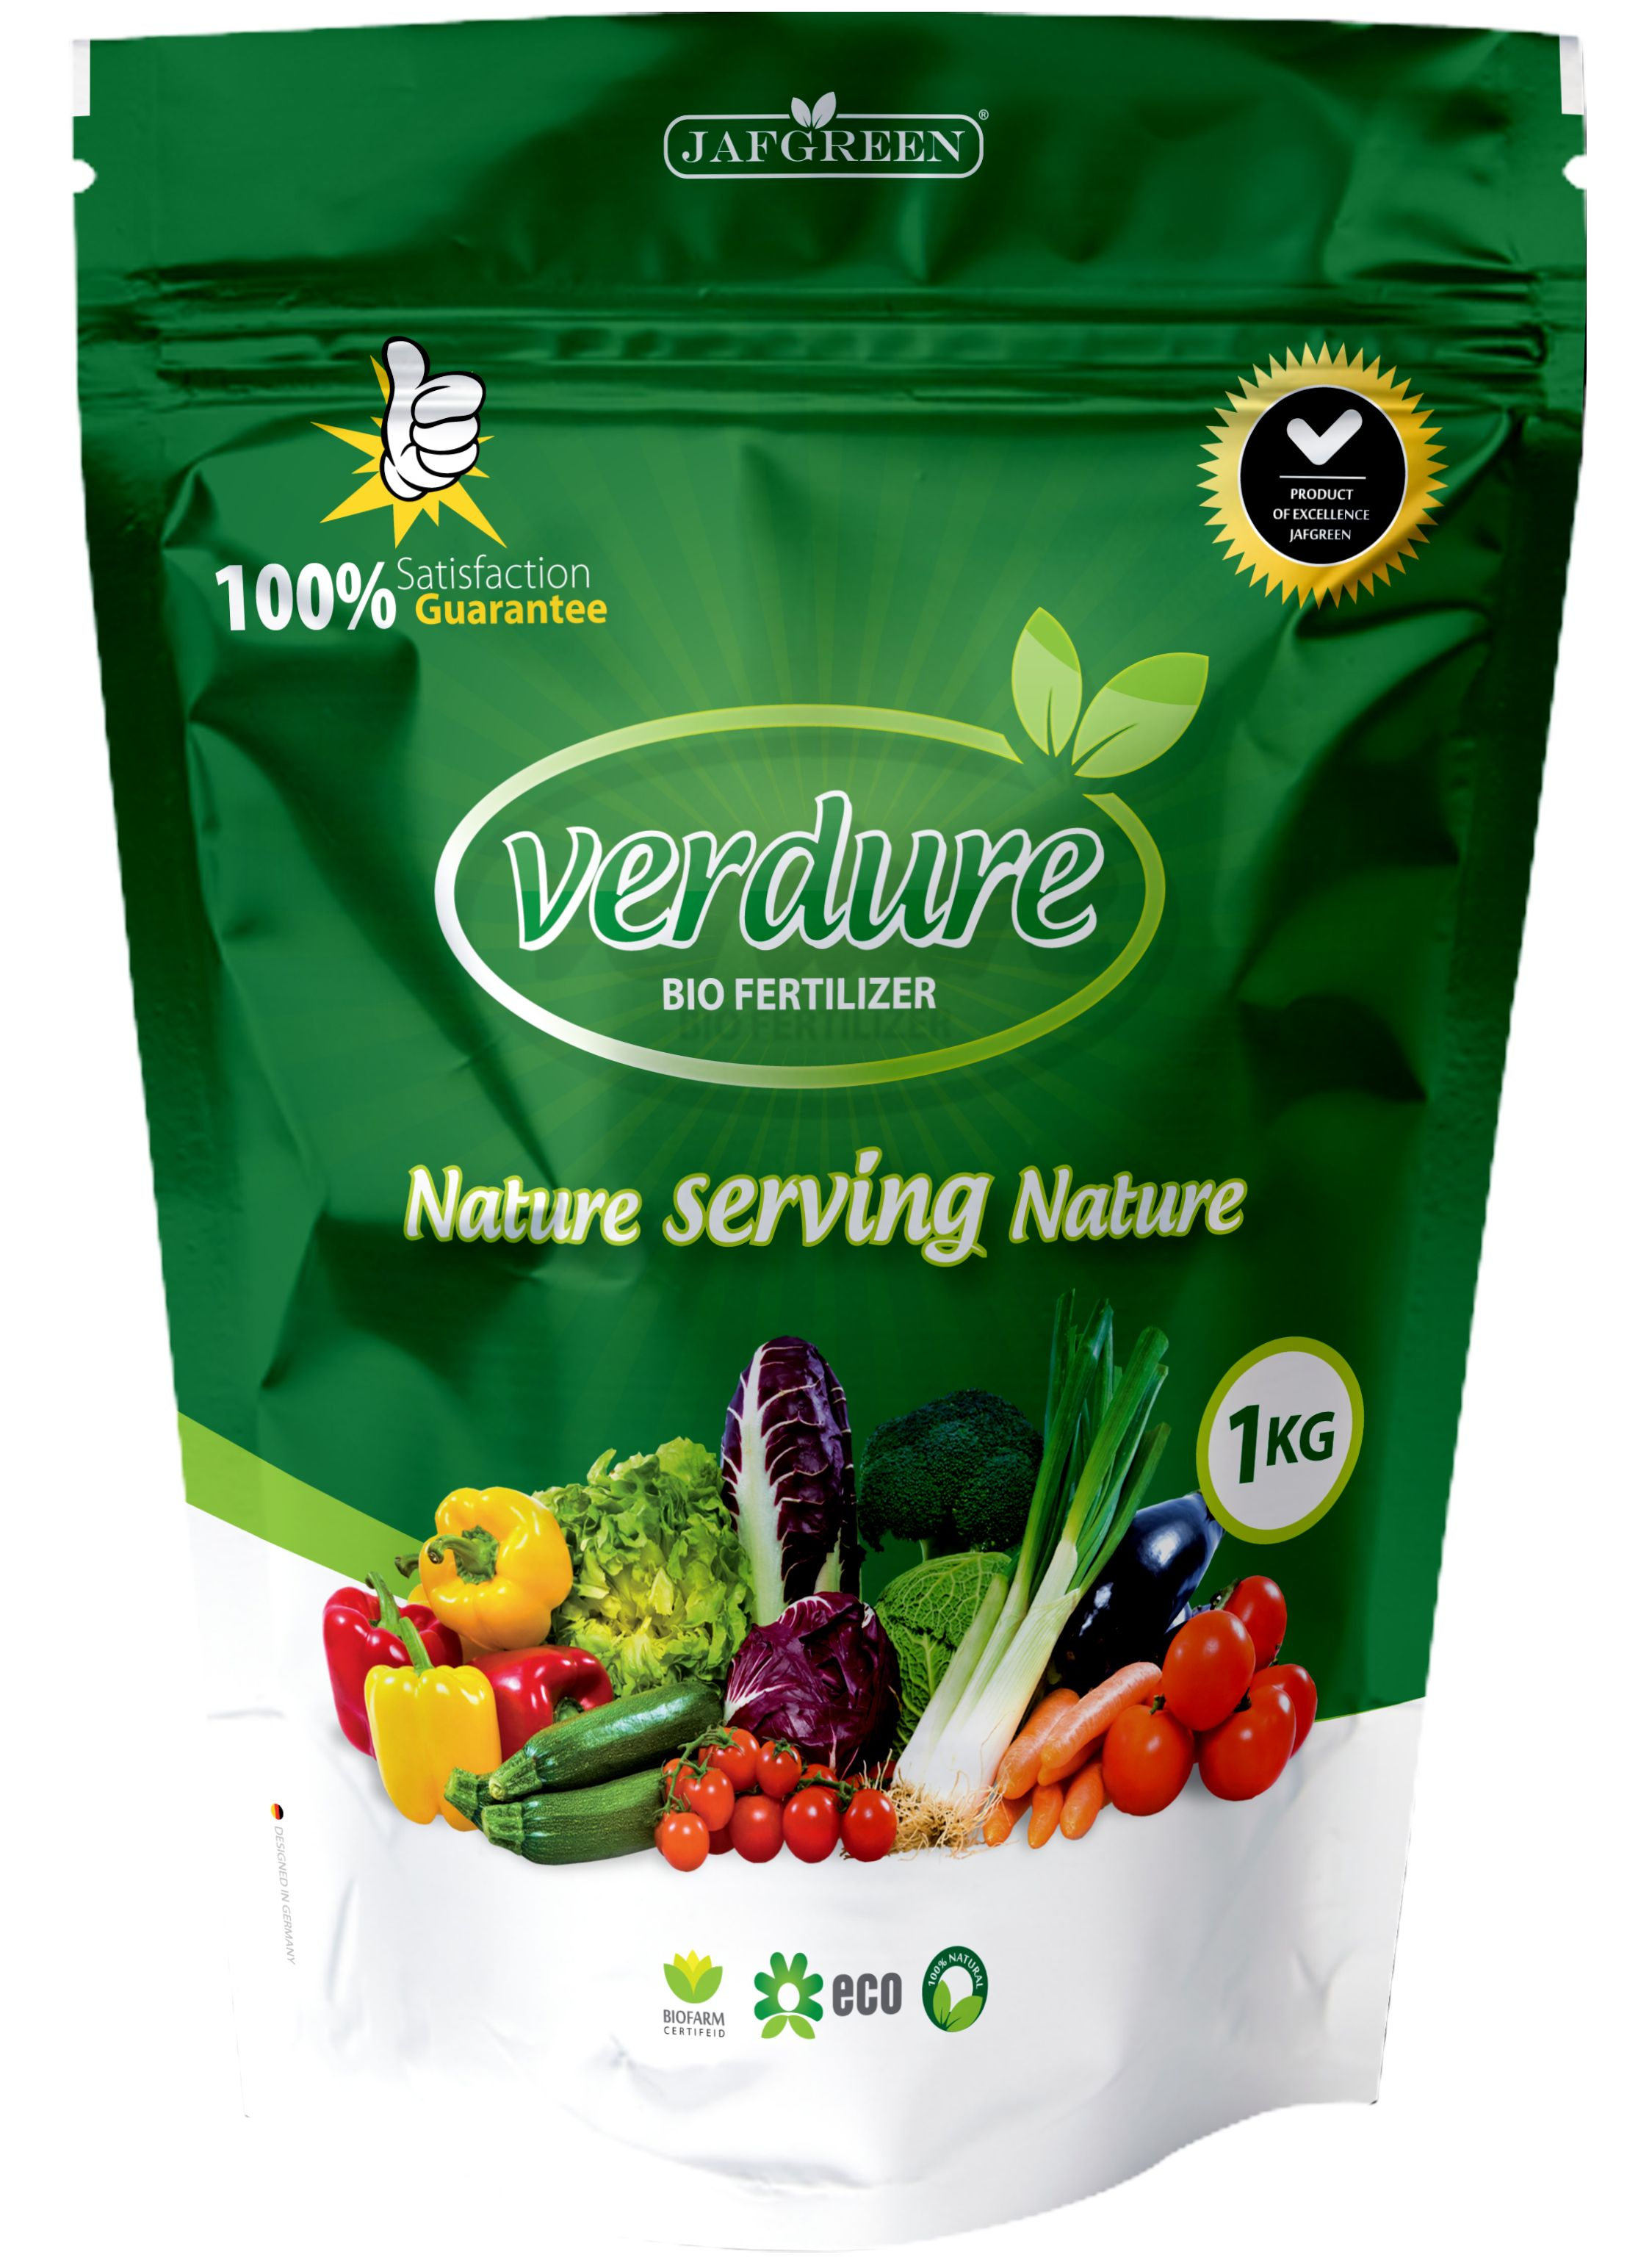 Stand Up Pouch Designs : Verdure bio fertilizer stand up pouch for more